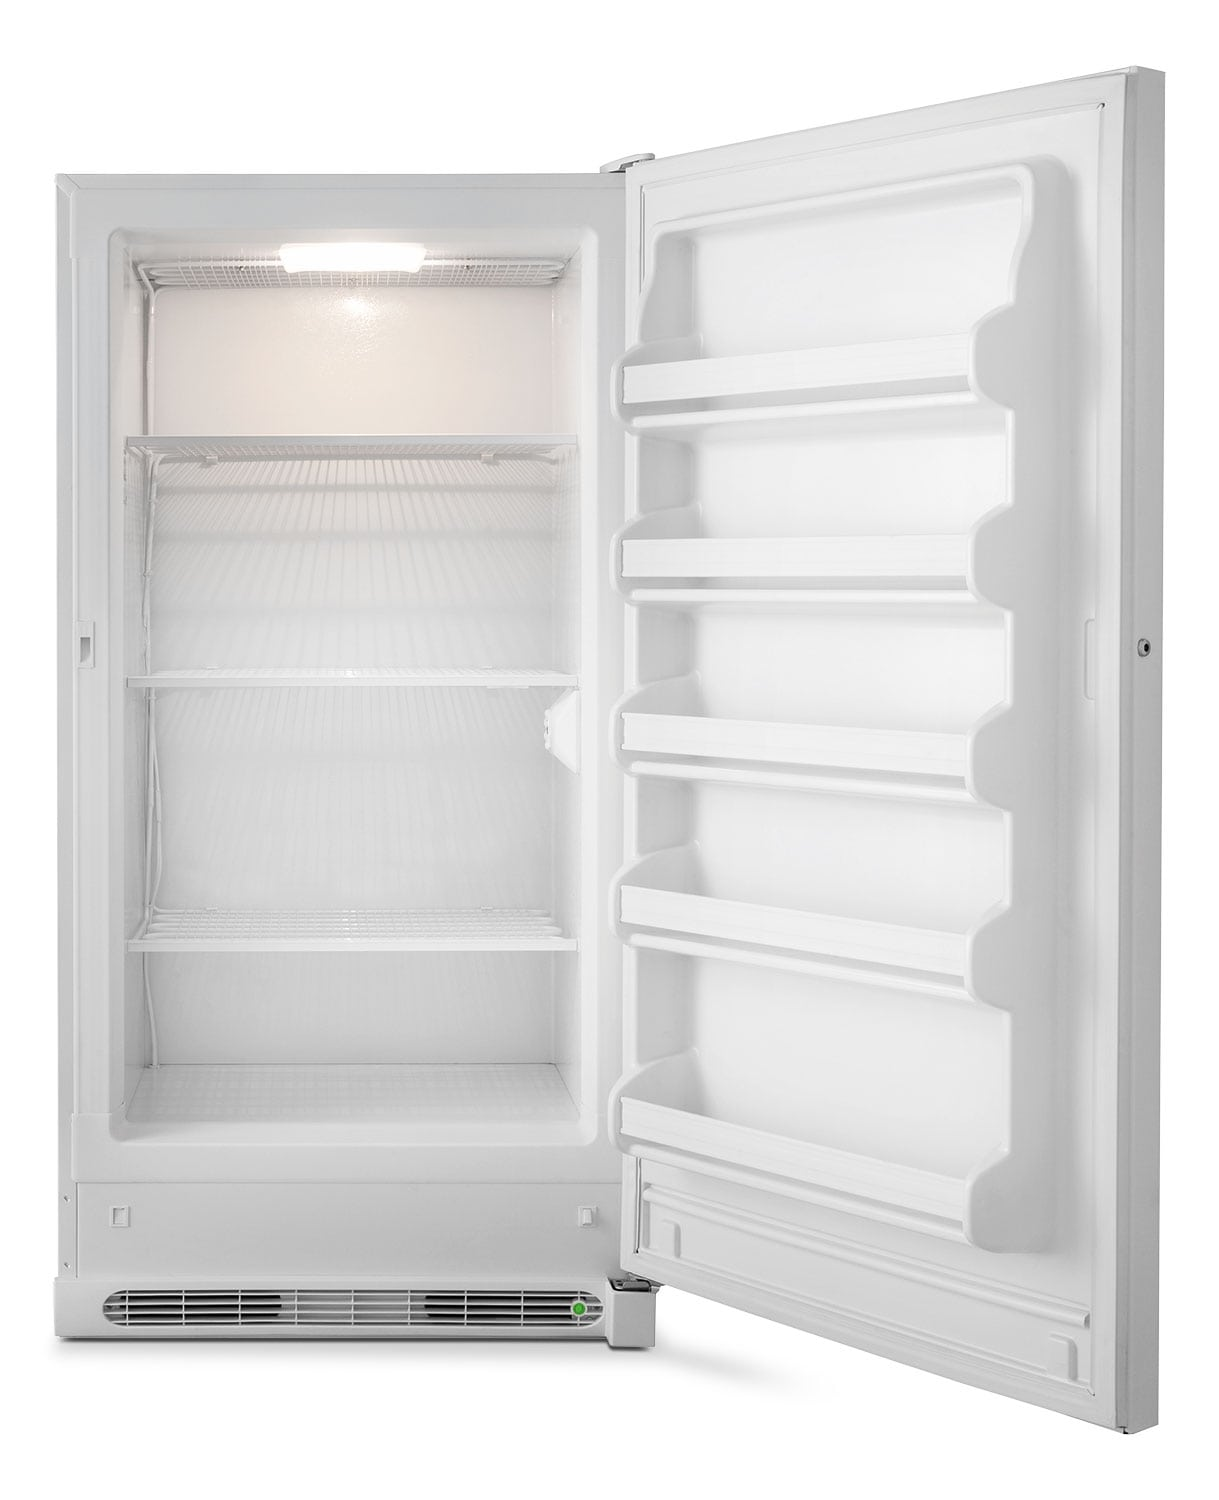 Vertical Freezers For Sale Frigidaire White Upright Freezer 17 Cu Ft Fffu17m1qw Leons